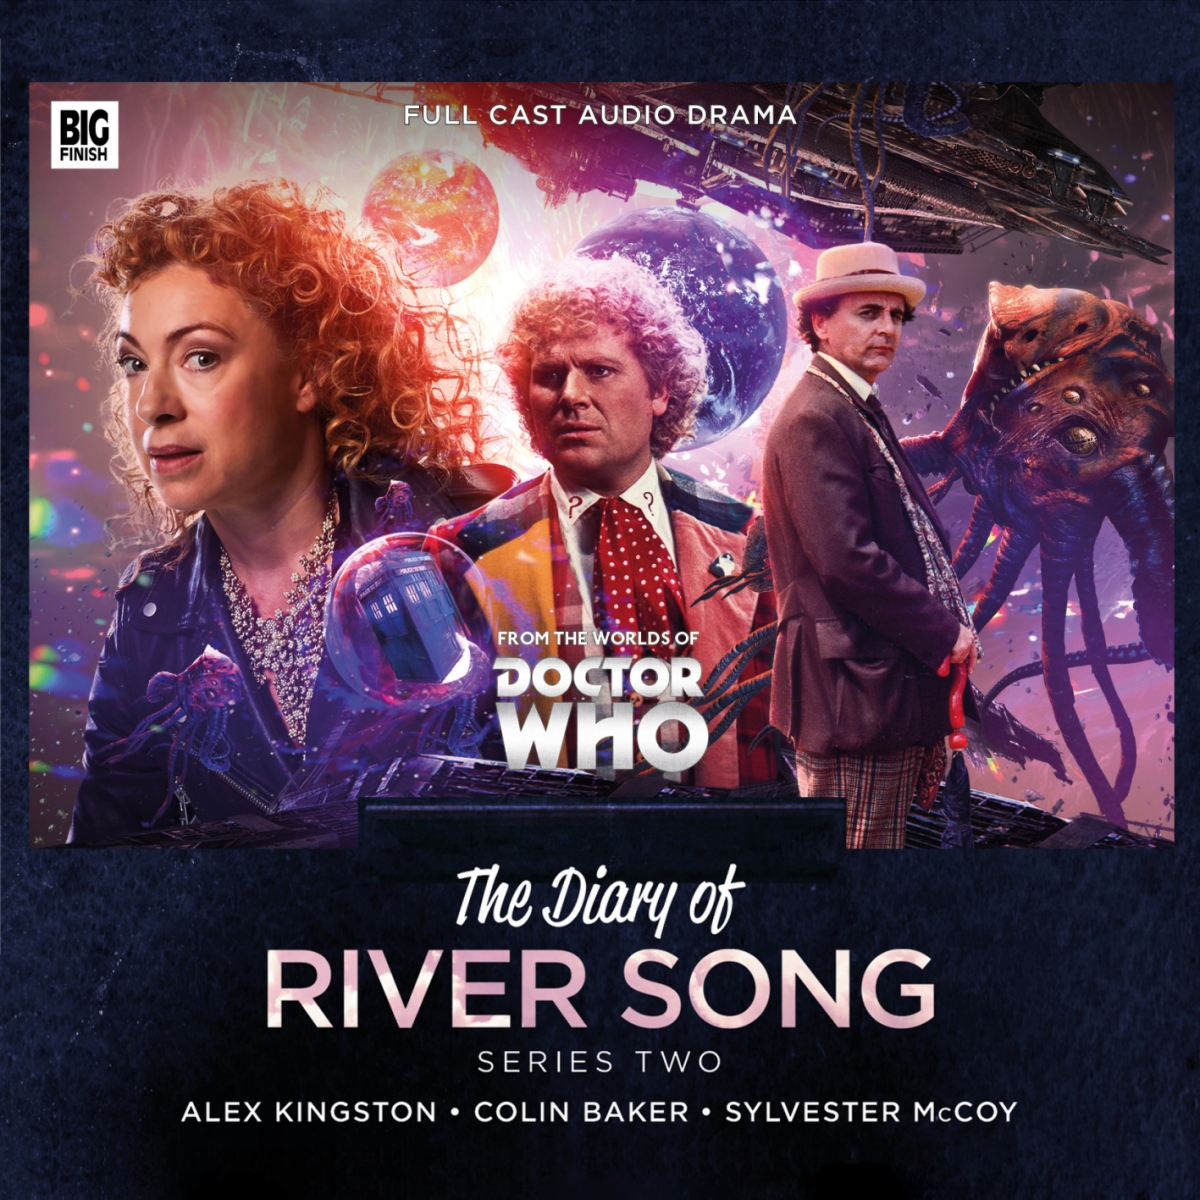 Diary of River Song Series 2 review